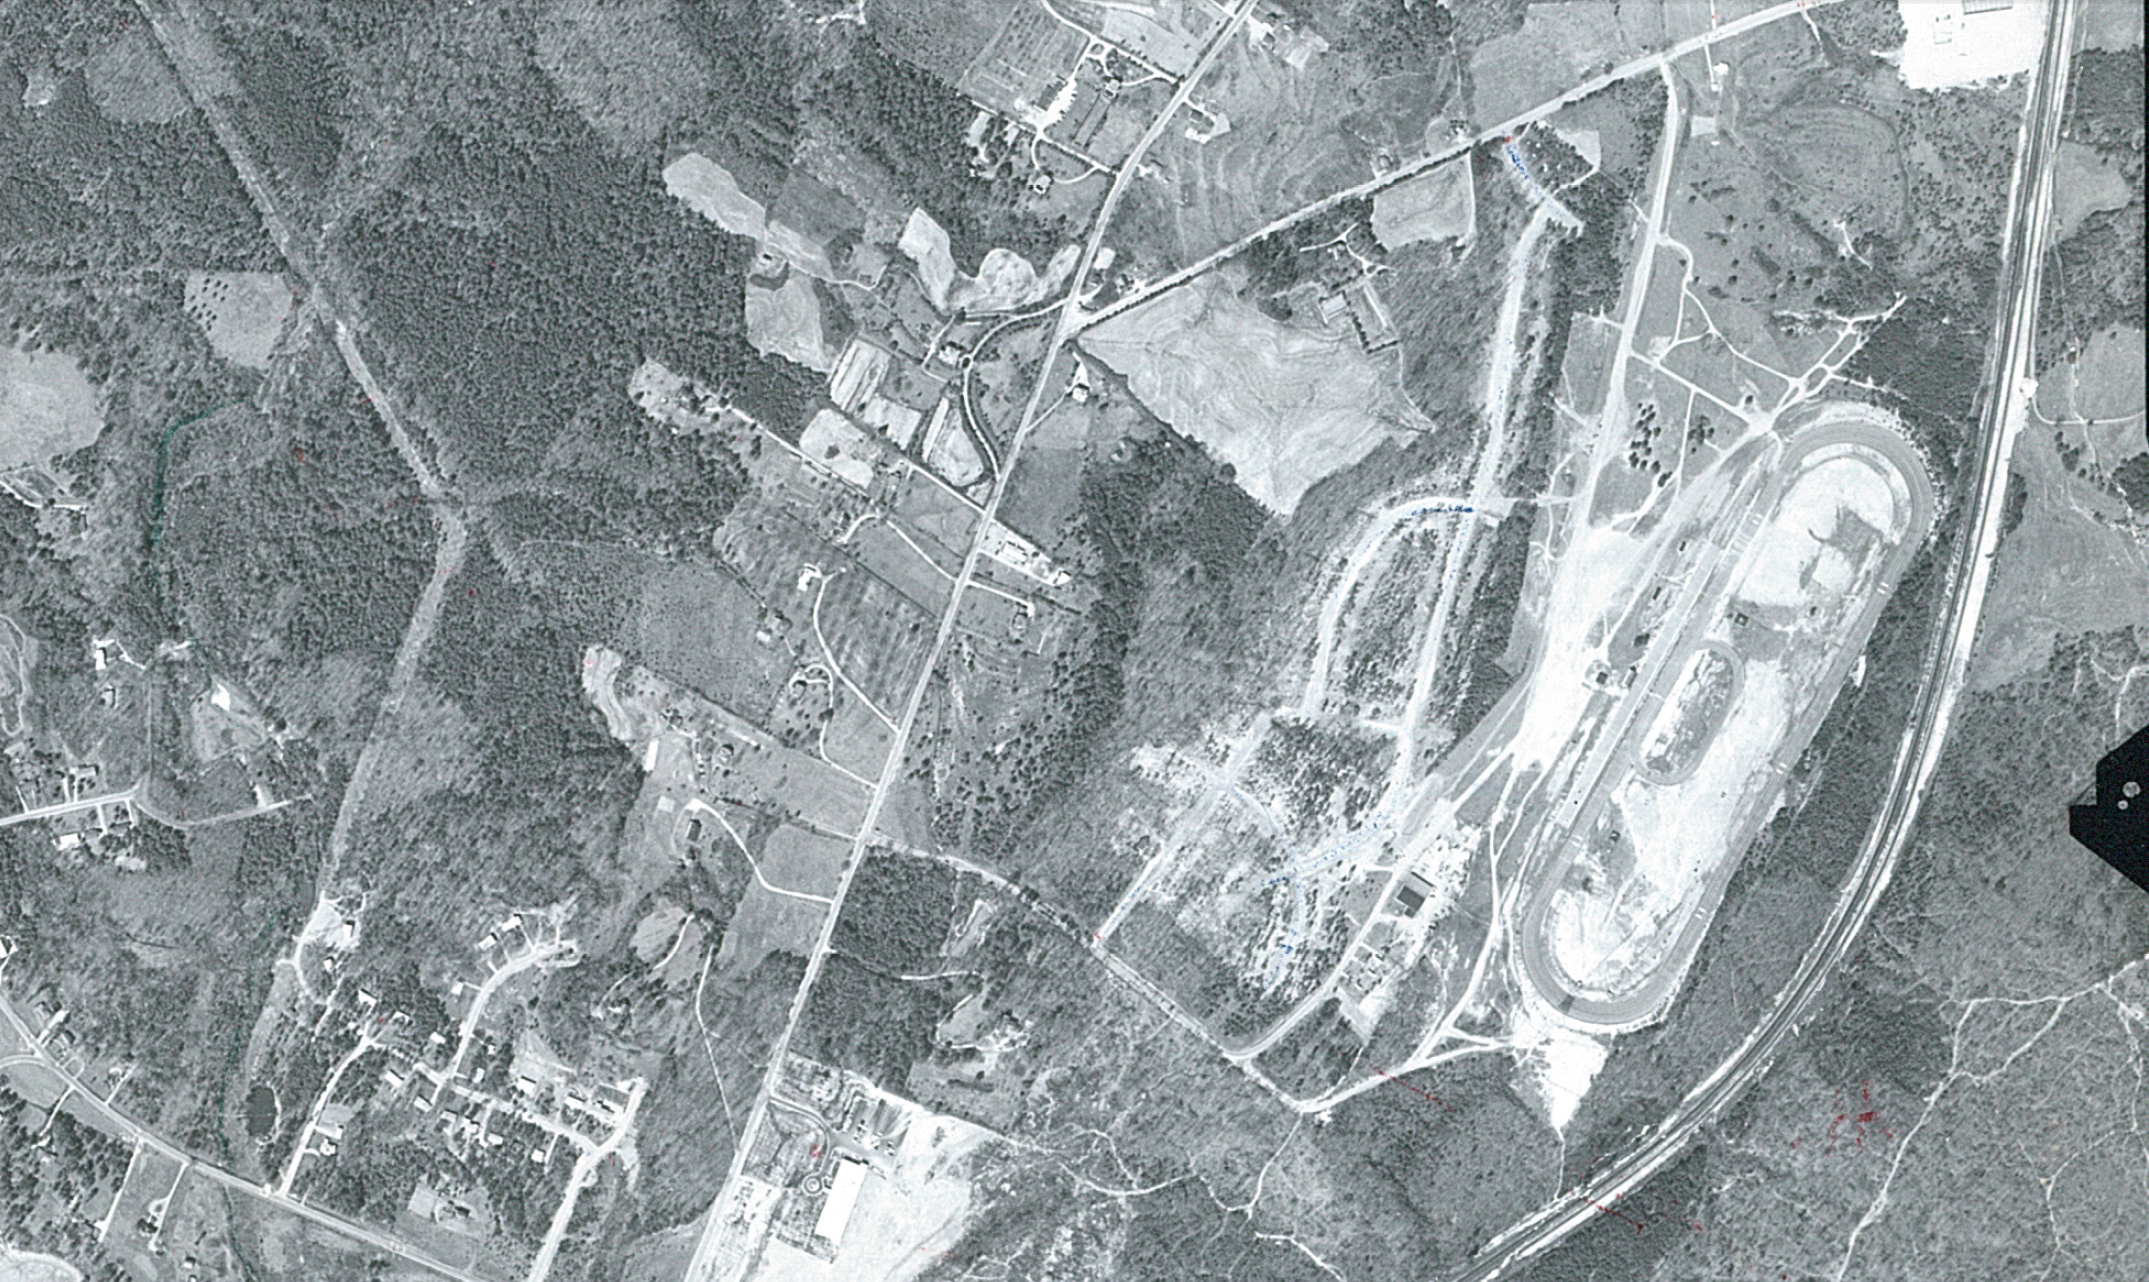 Birds eye view of what Raleigh Speedway looked like in the 1950s